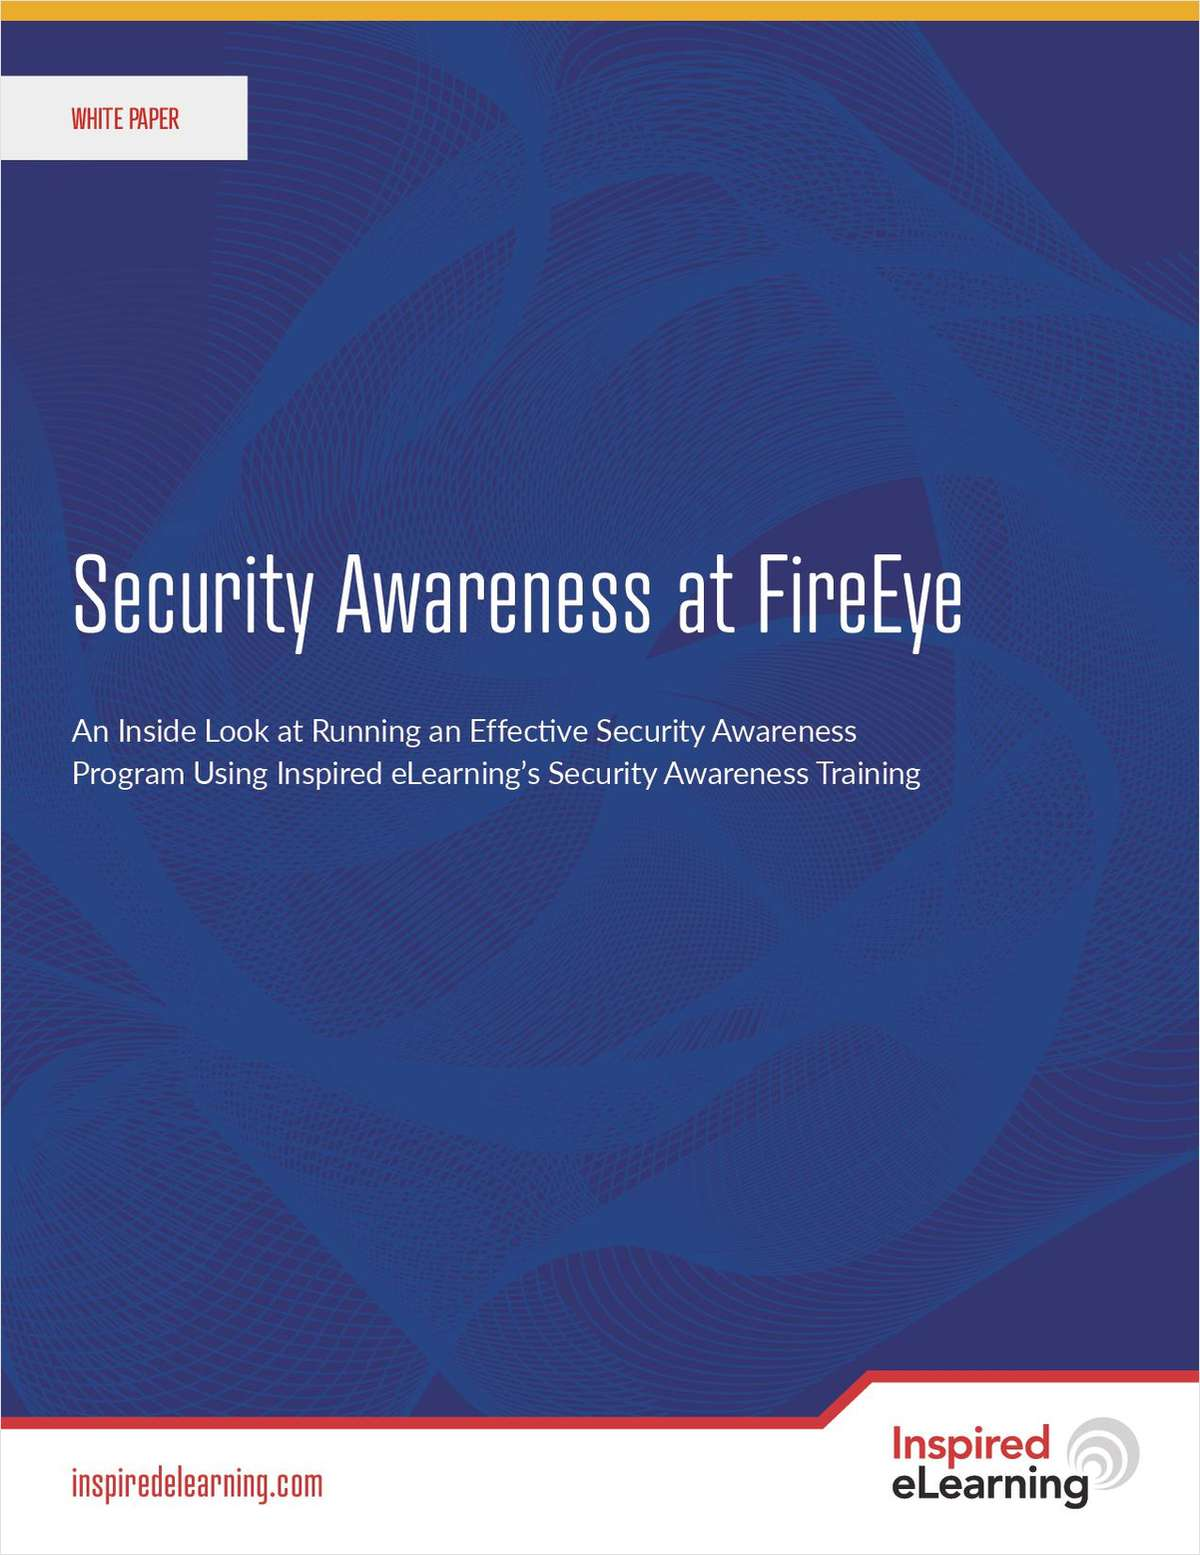 Security Awareness at FireEye